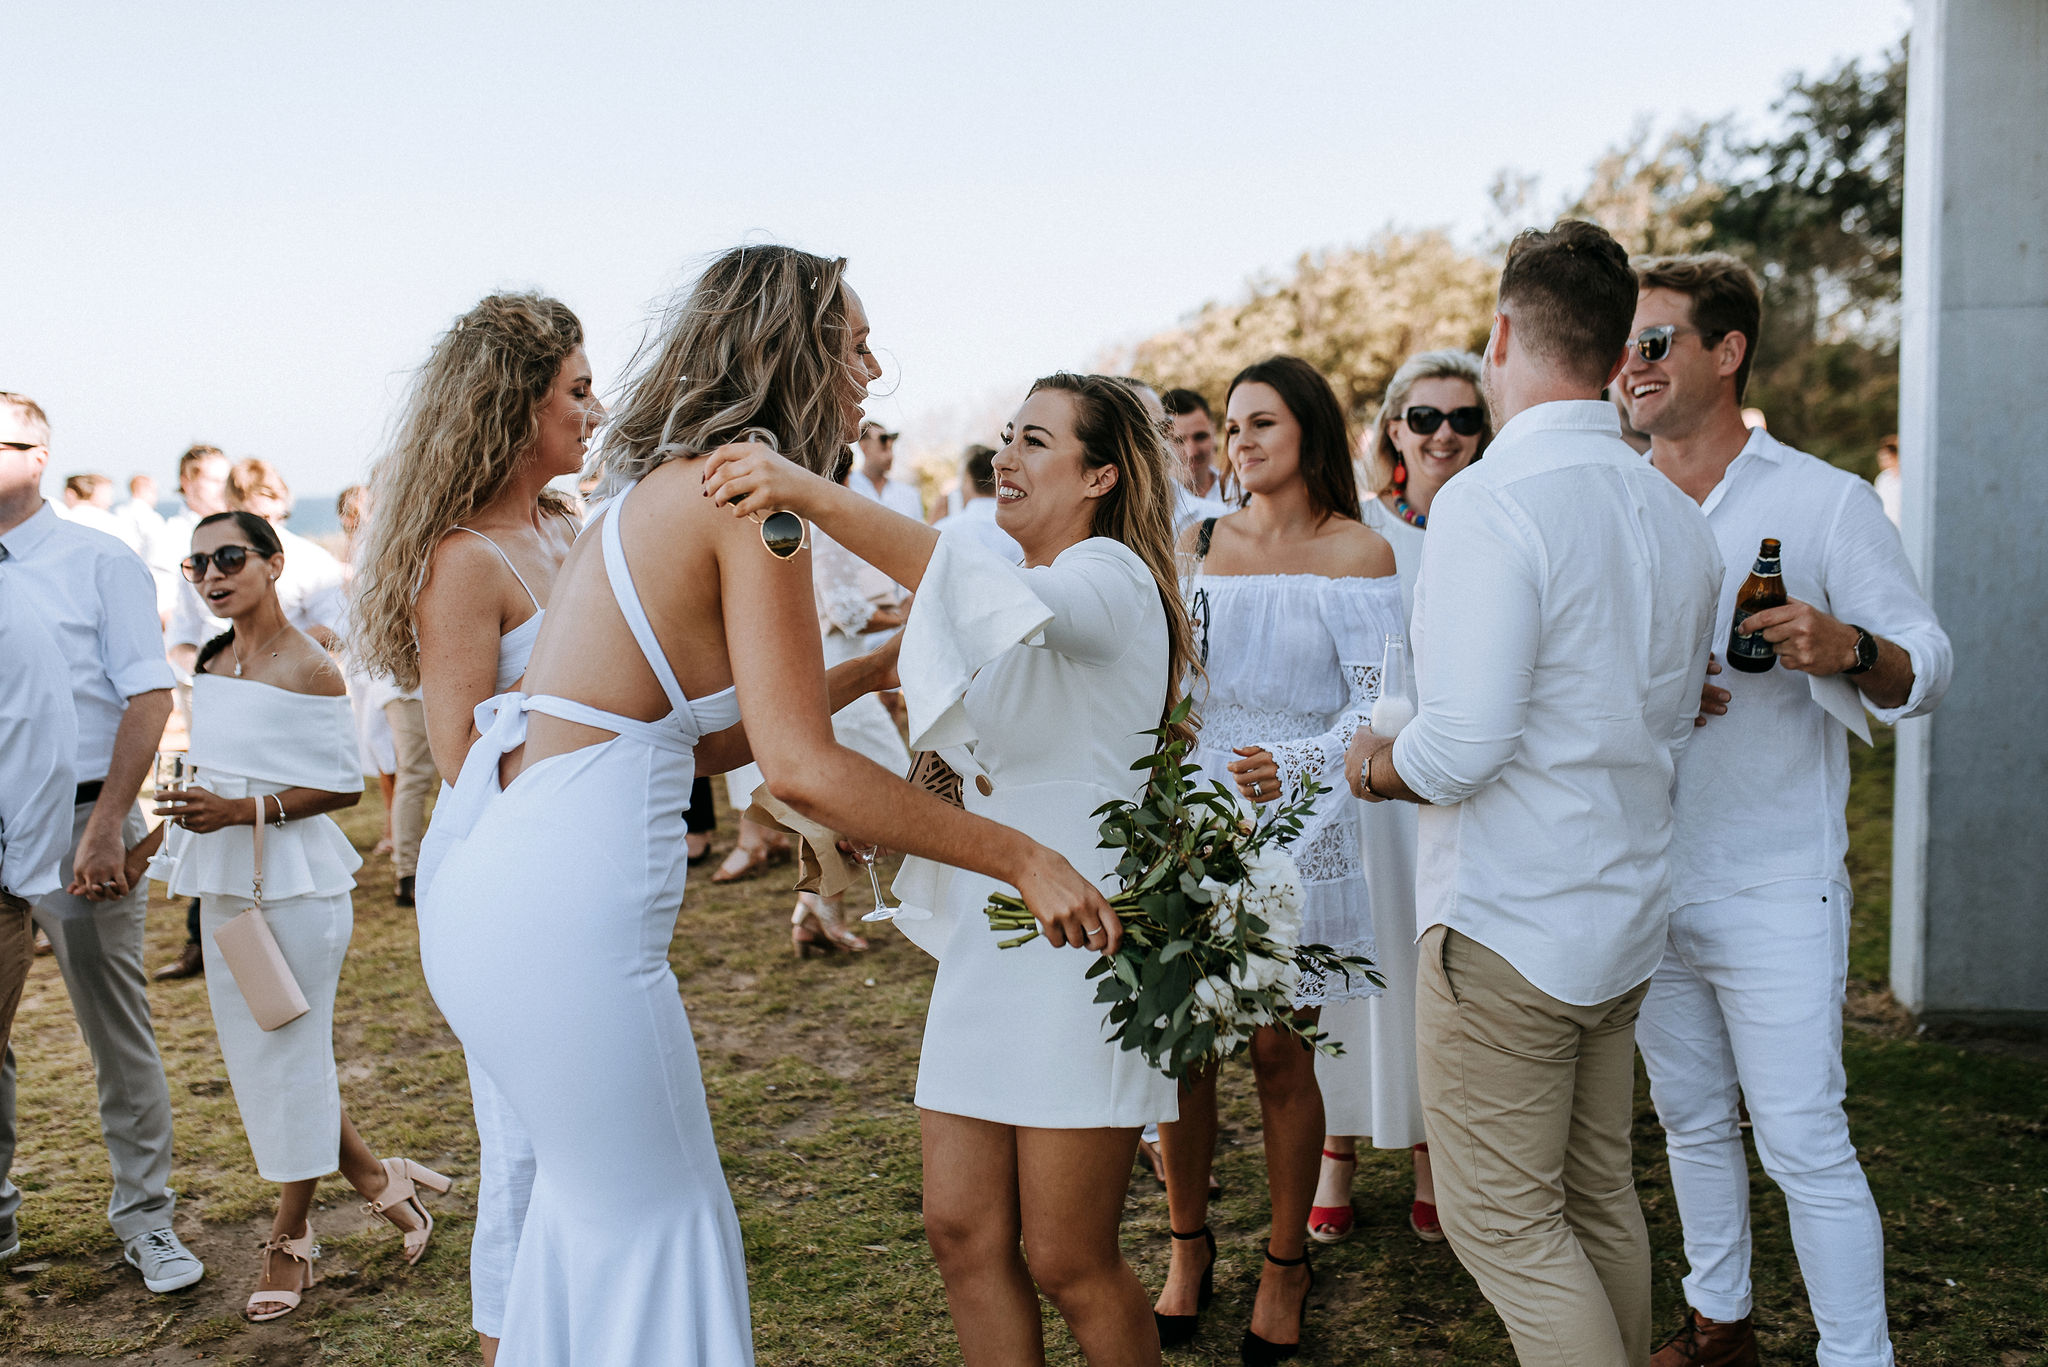 CULBURRA-BEACH-WEDDING-HEFFERNAN-PREVIEW-24.jpg